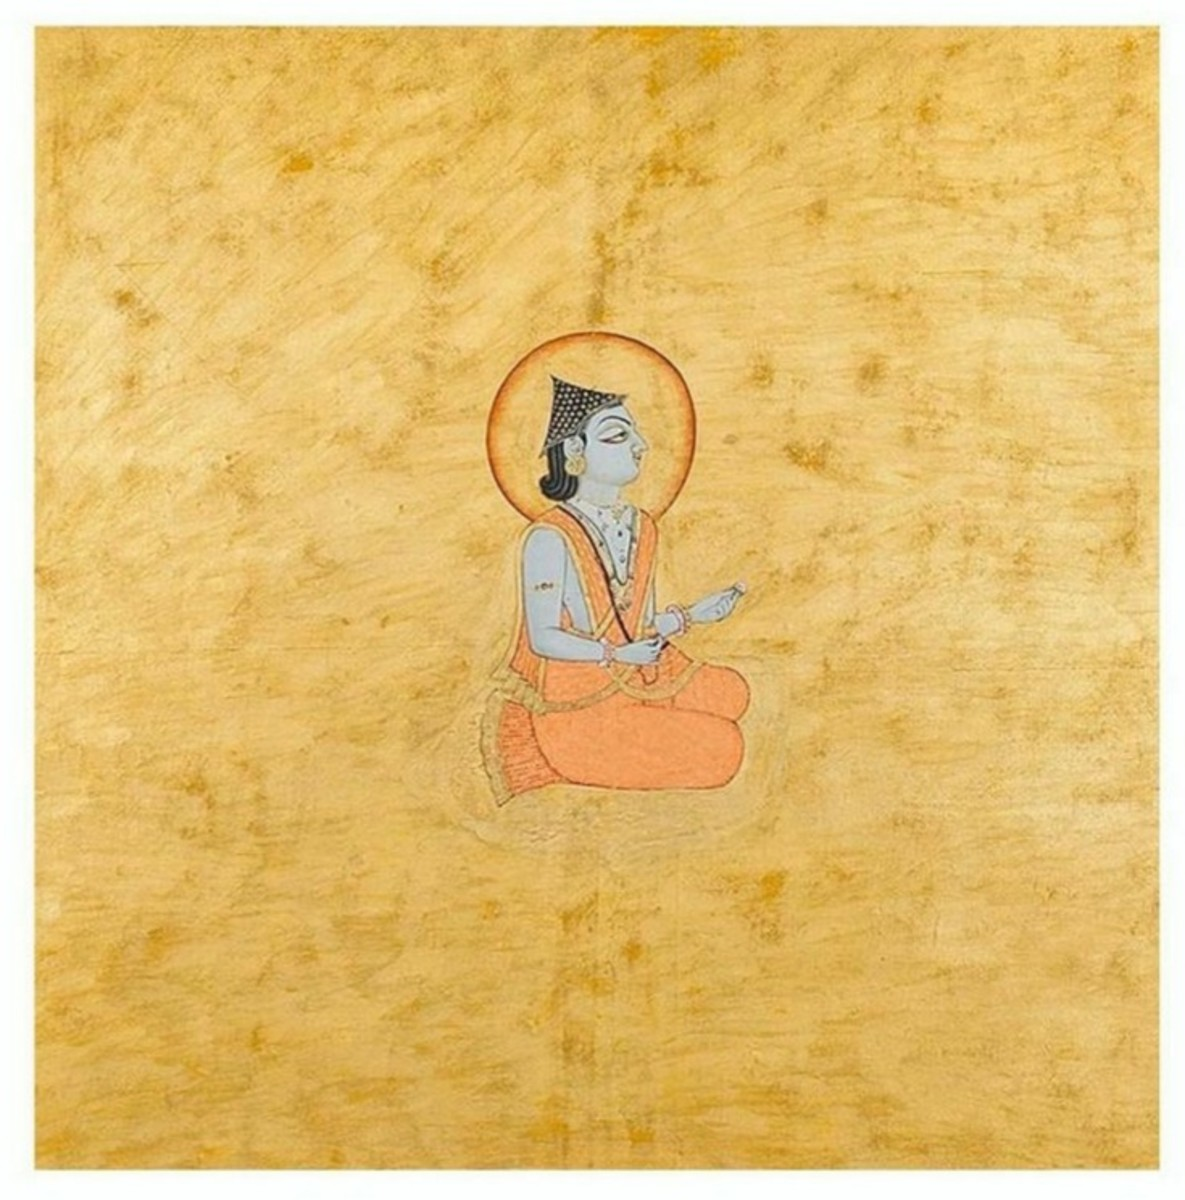 Atman-the concept of 'self' or individual soul' found in Indian philosophy.